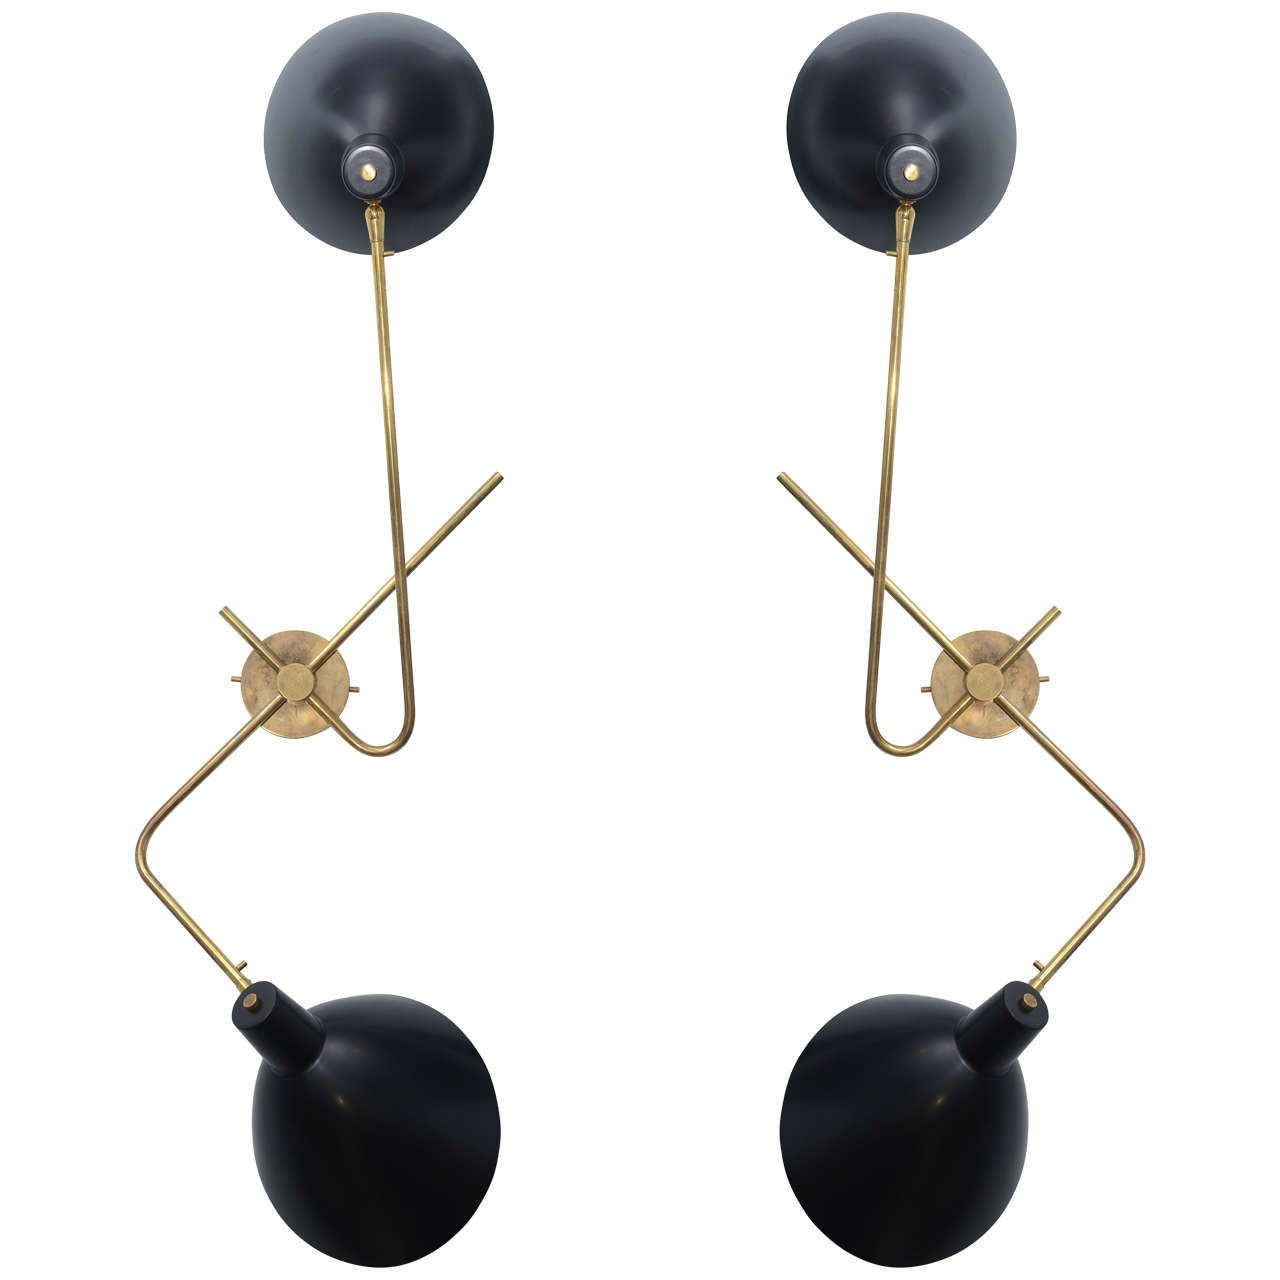 Pair of Large Italian Modern Brass and Enameled Wall Lights, Gino Sarfatti